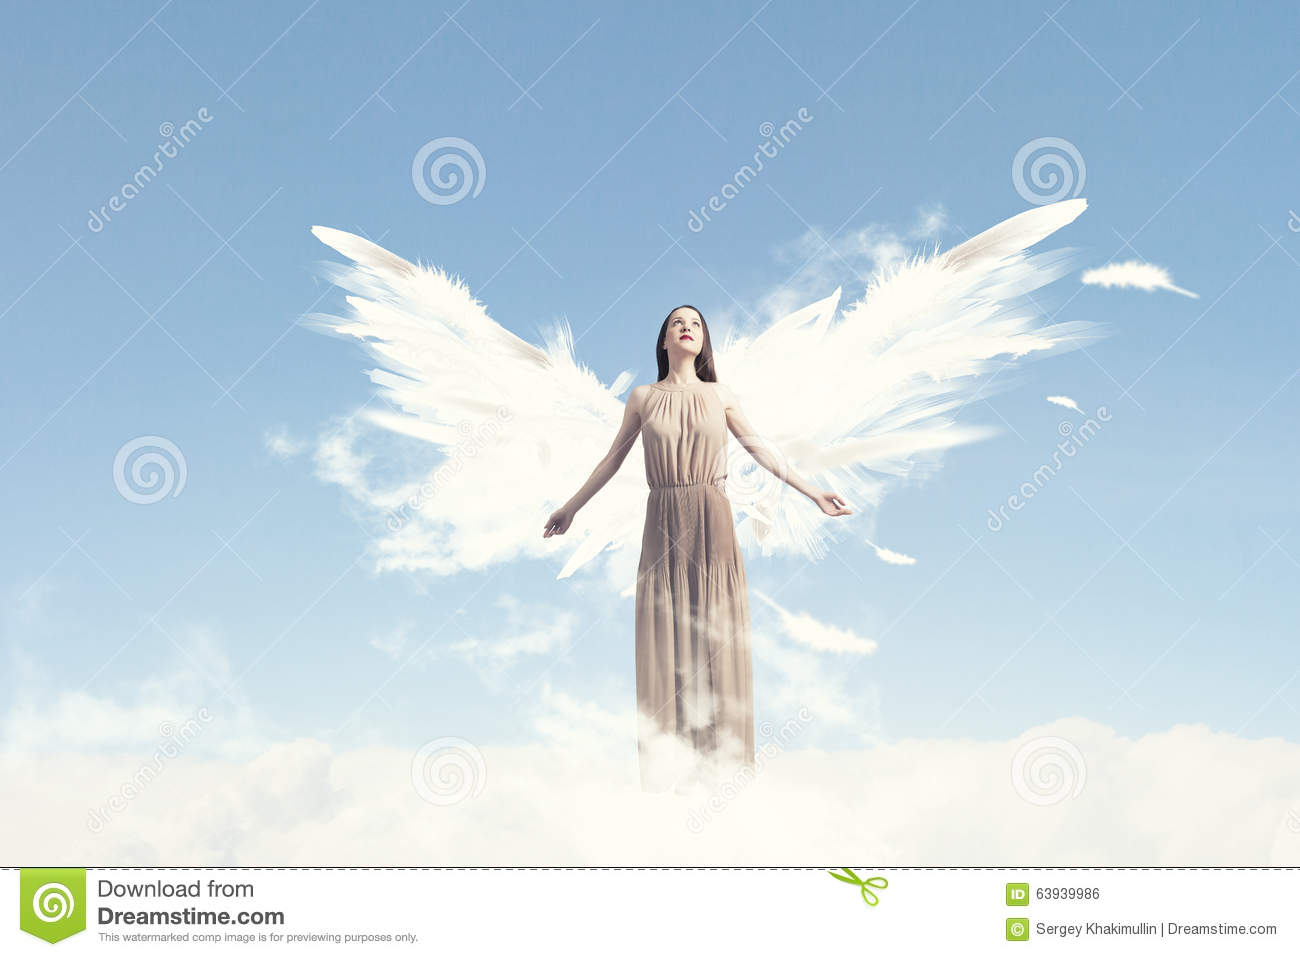 Angel girl flying high